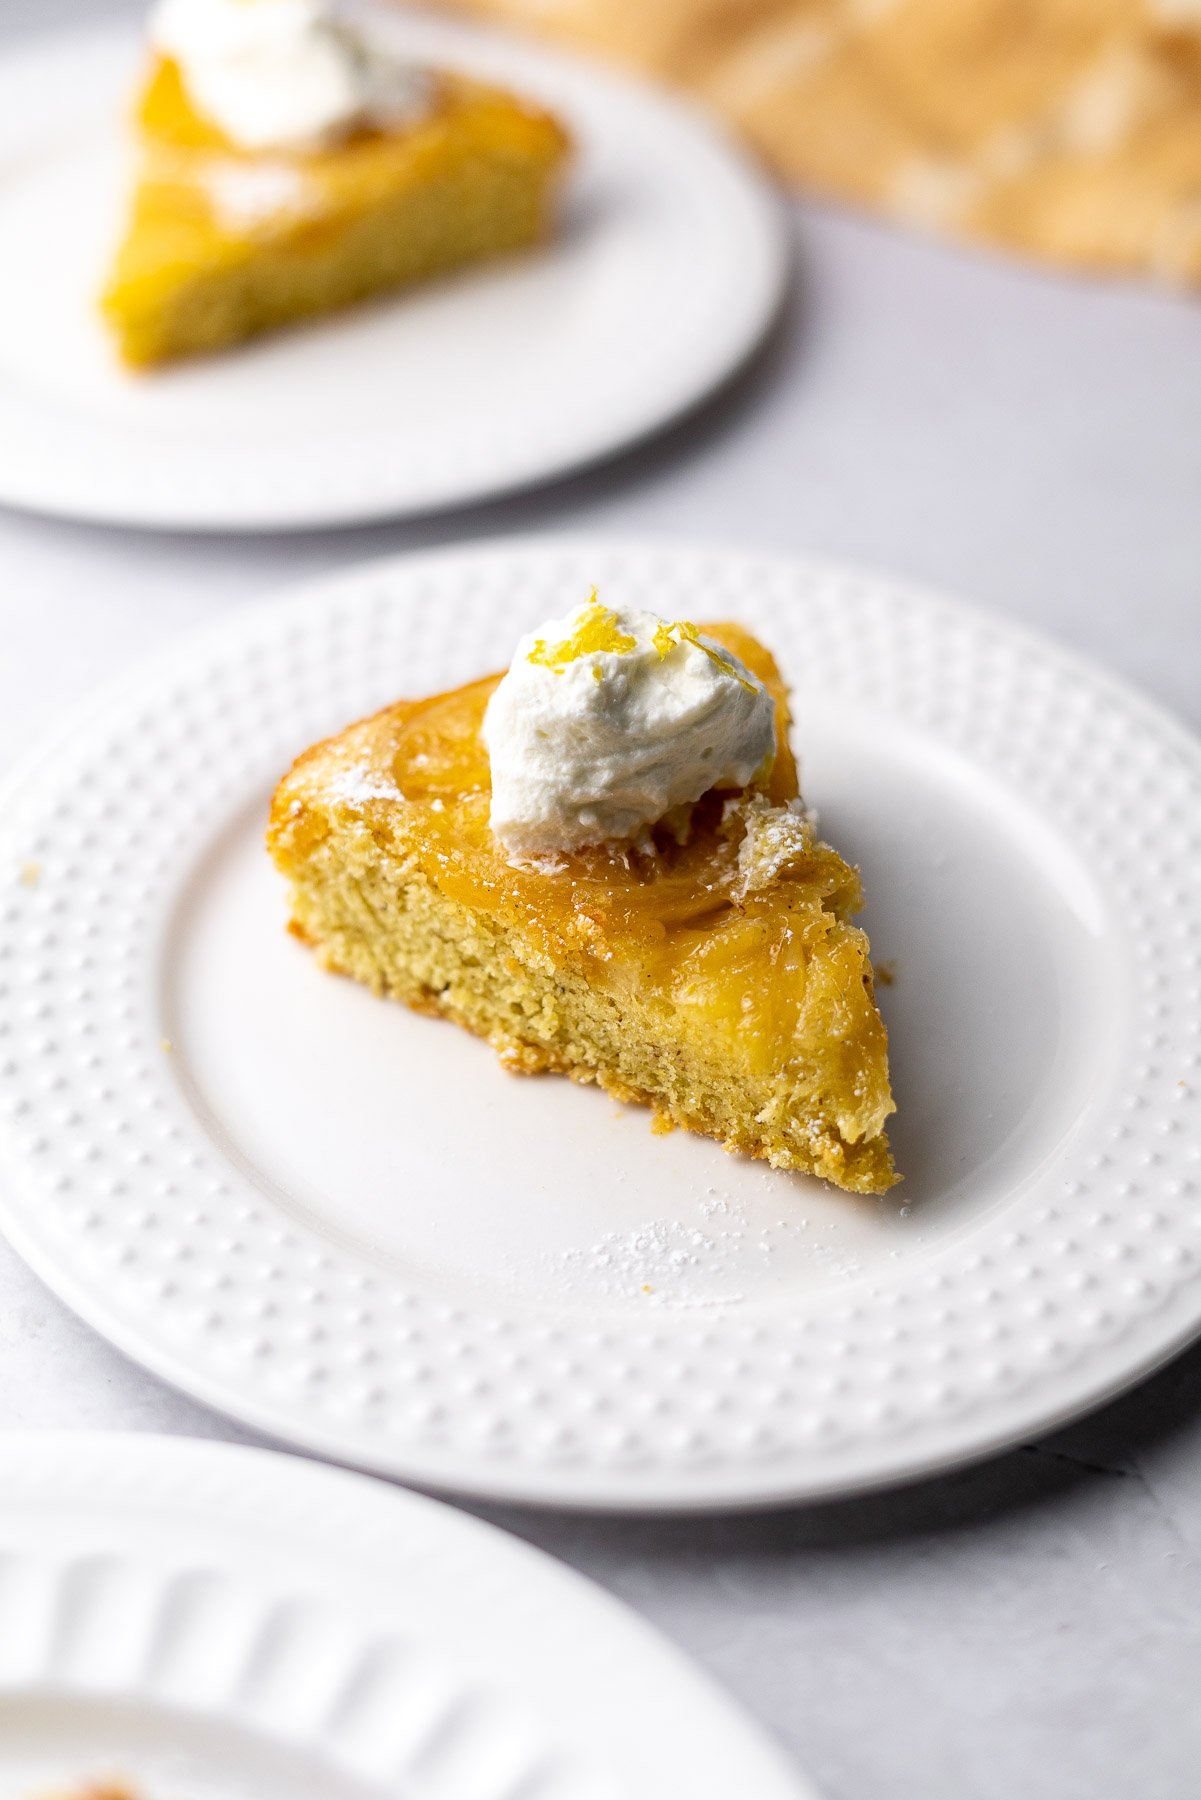 two slices of lemon cardamom olive oil cake with whipped cream